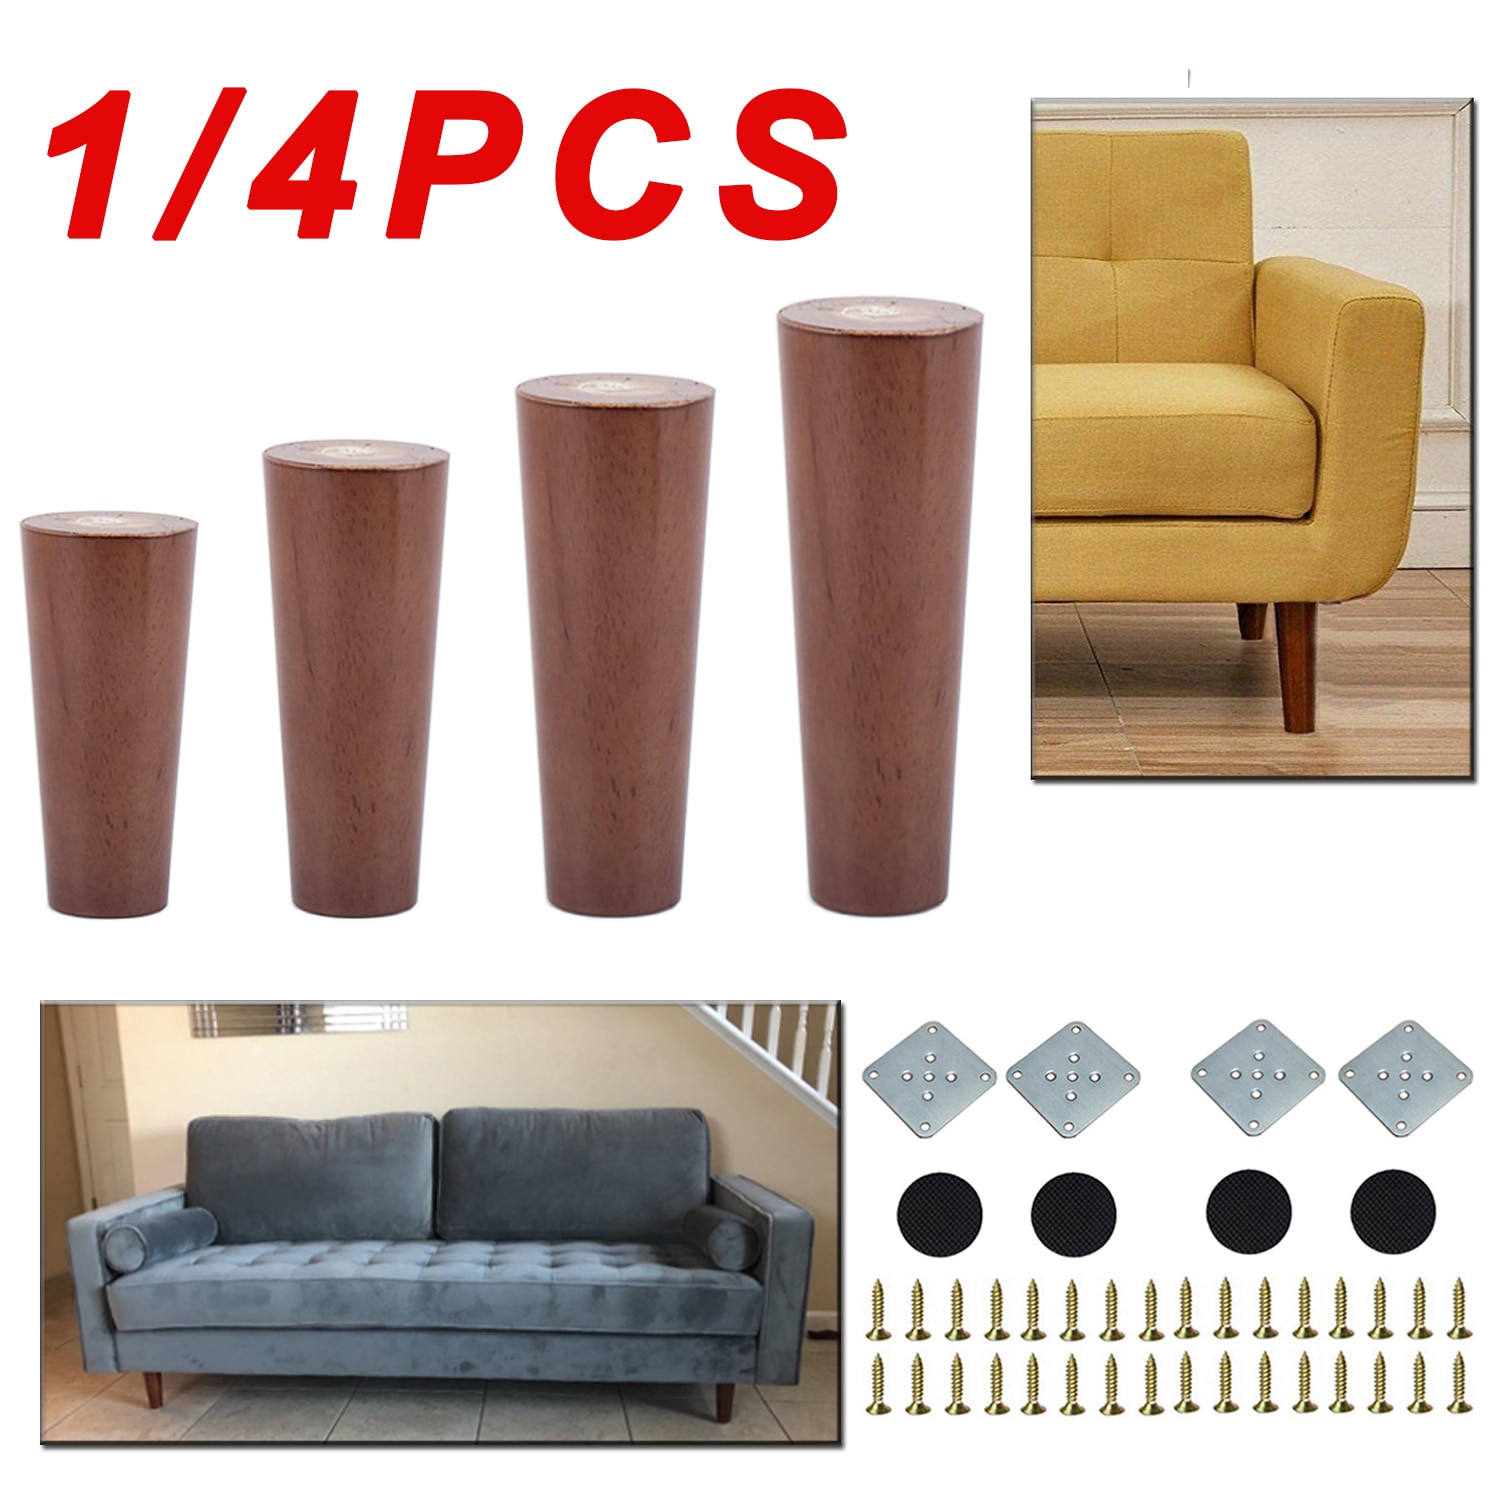 1/4PCS Solid Wood Straight Furniture Legs Walnut Color Legs With Metal Footings Sofa Replacement Legs For Cabinet Couch Table fd self locking switch legs with long legs 2x3 frame